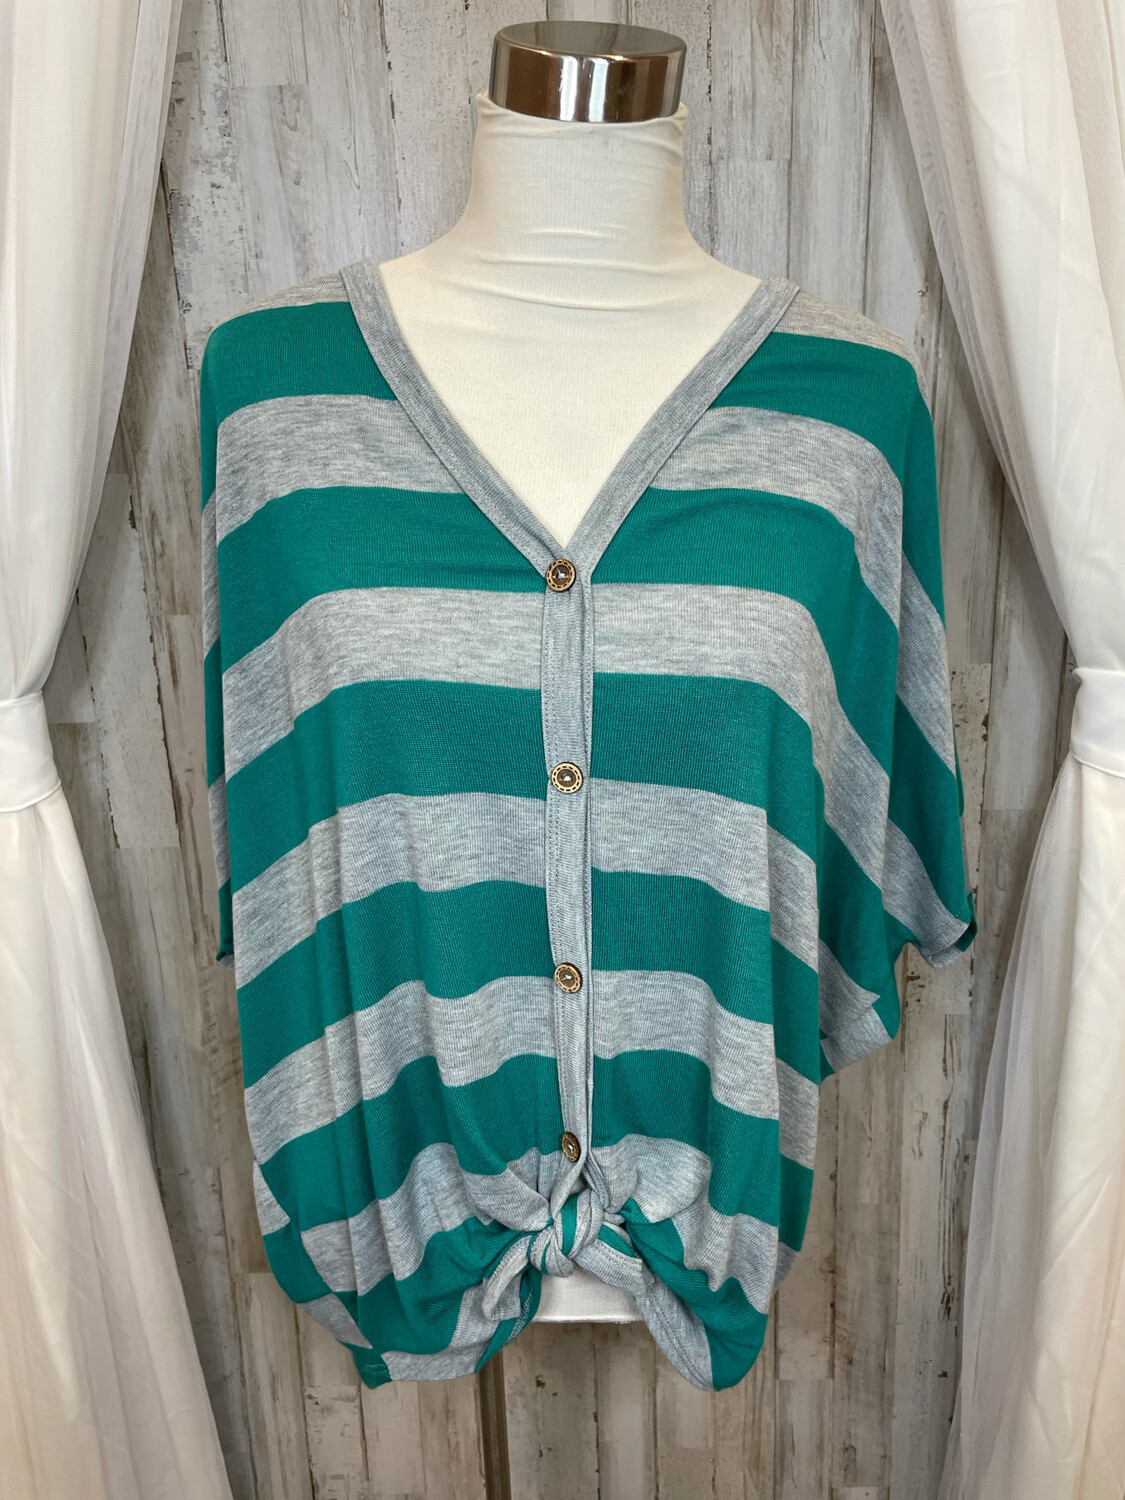 Fantastic Fawn Green & Grey Striped Button Up Front Tie Top - M